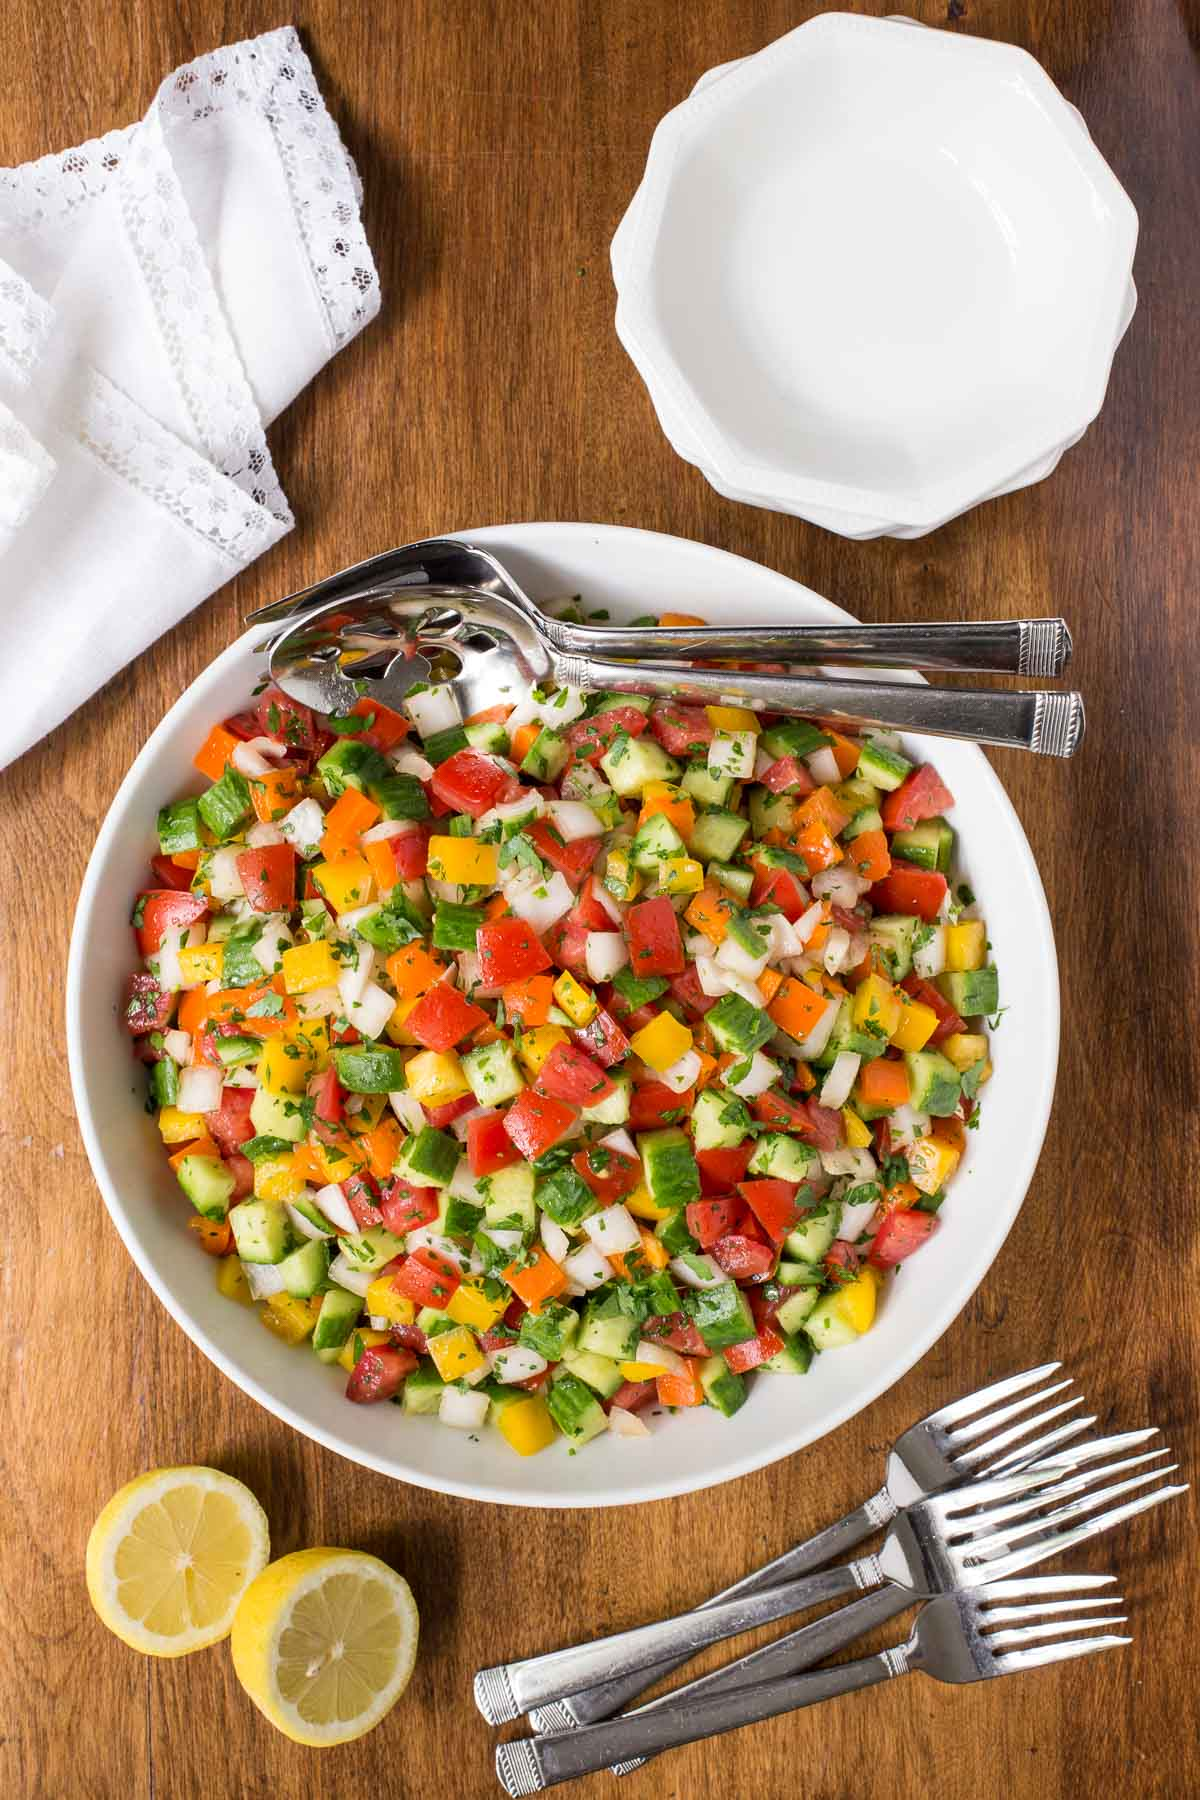 Overhead photo of a dish of Turkish Tomato Cucumber Salad, surrounded by a napkin, individual serving bowls, lemons and silverware.